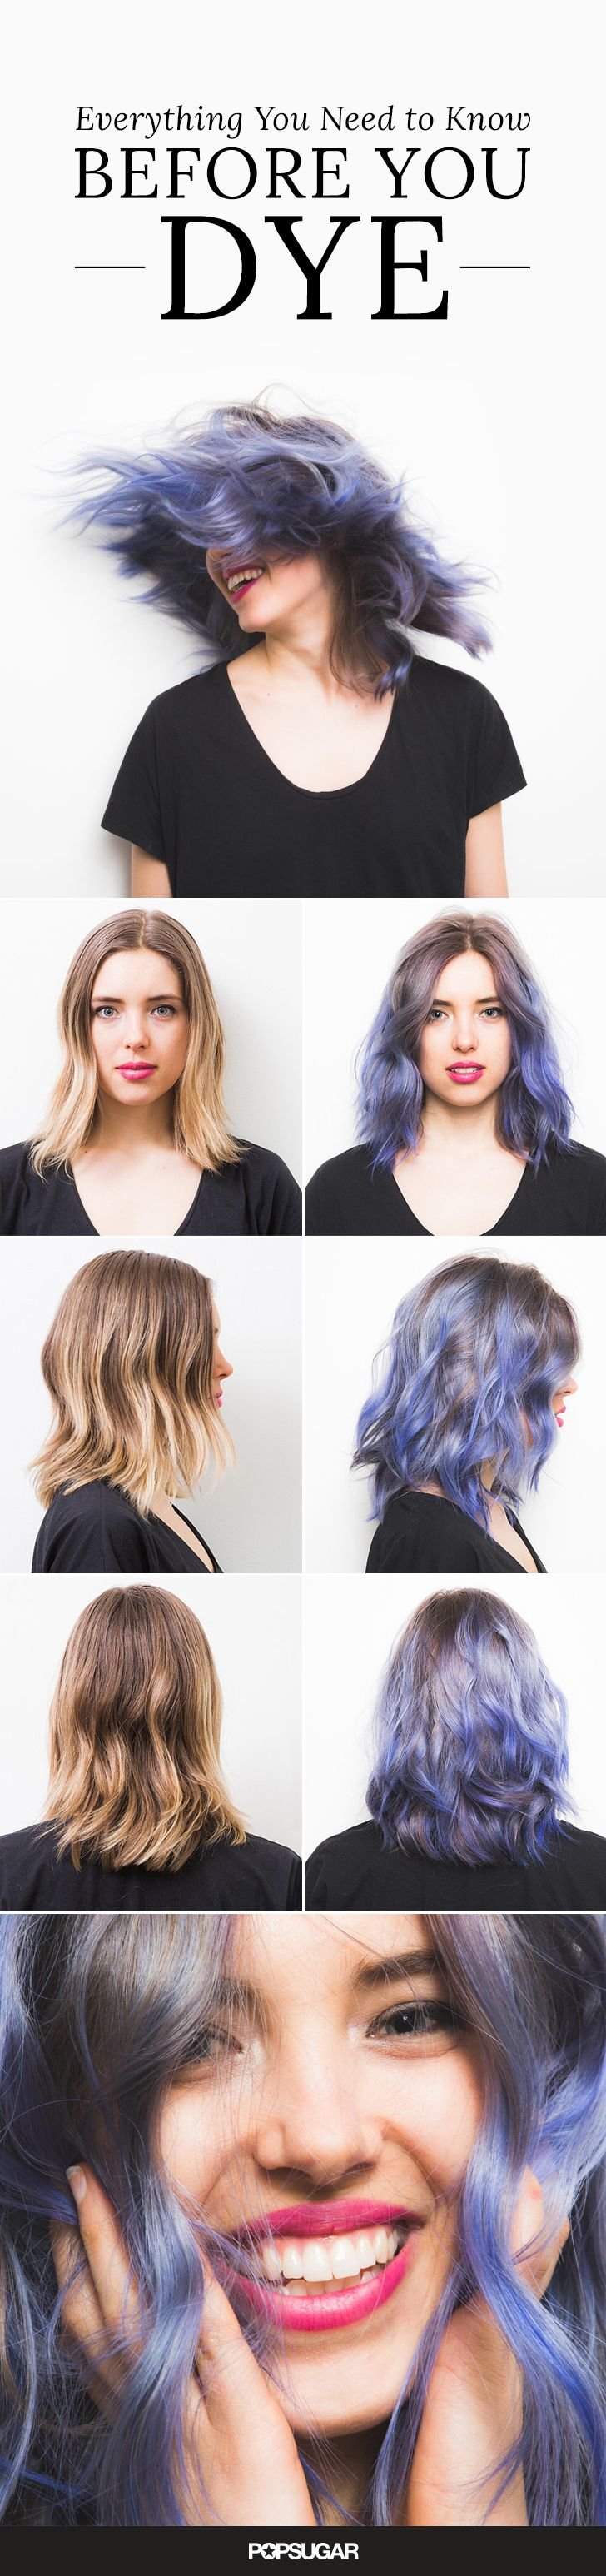 how to make your hair greasy to dye it